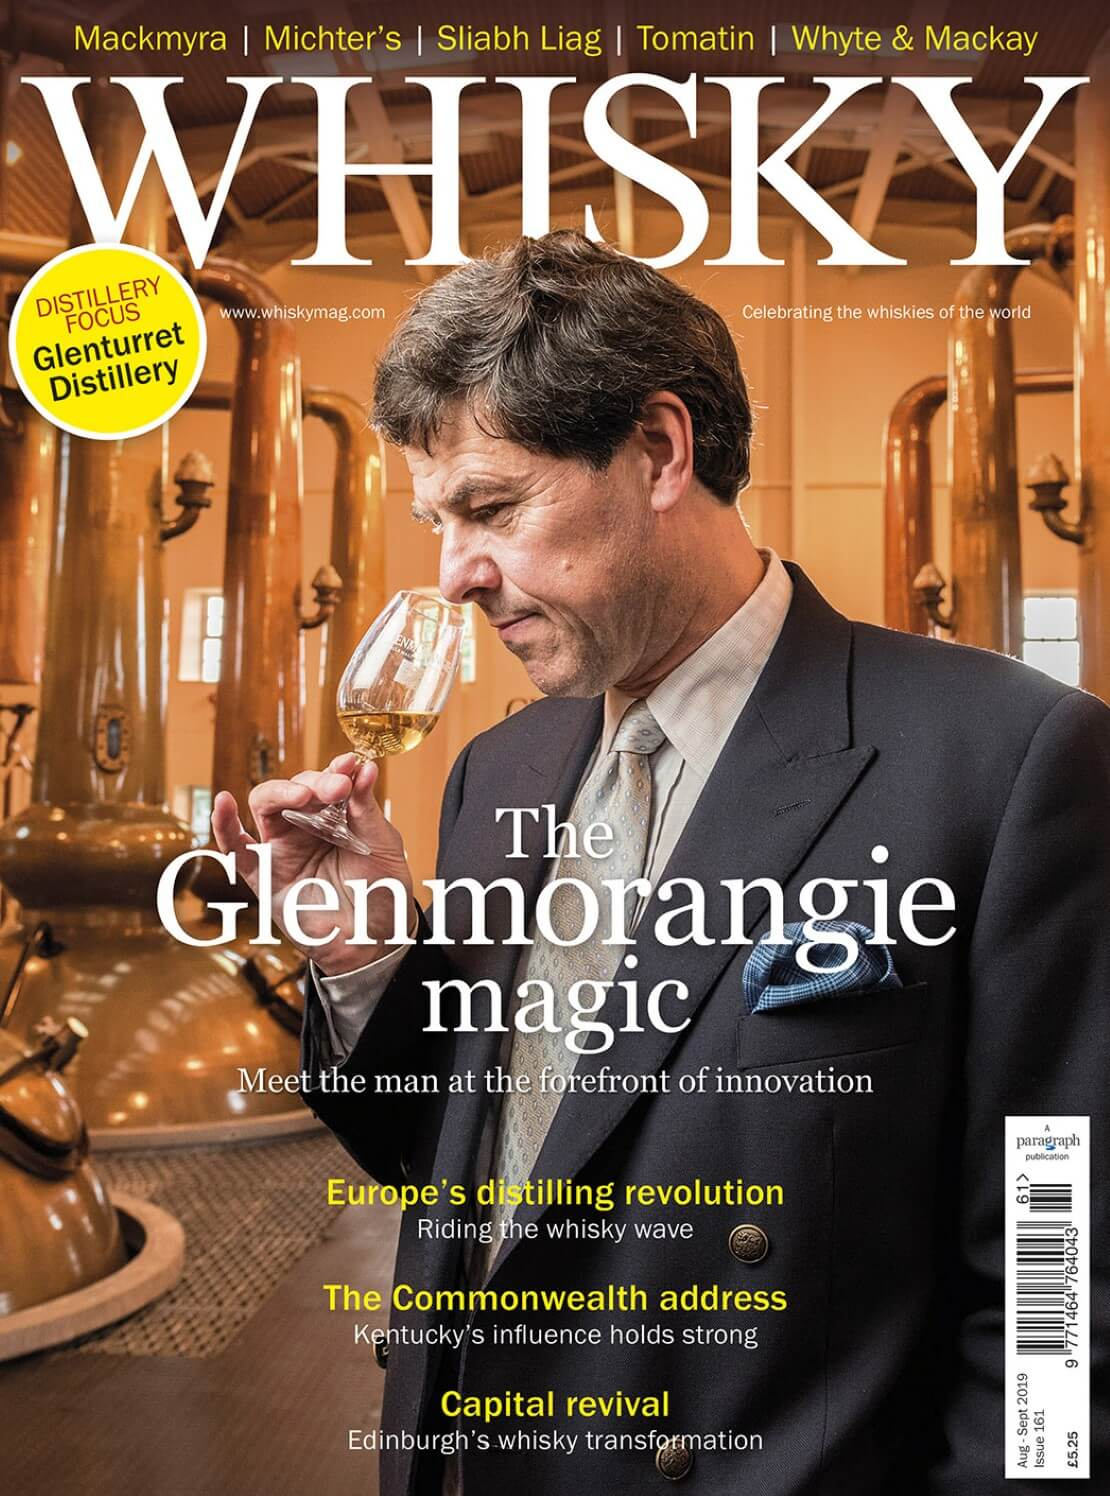 Meet Glenmorangie's Dr Bill Lumsden, Kentucky Bourbon preview, Edinburgh rising